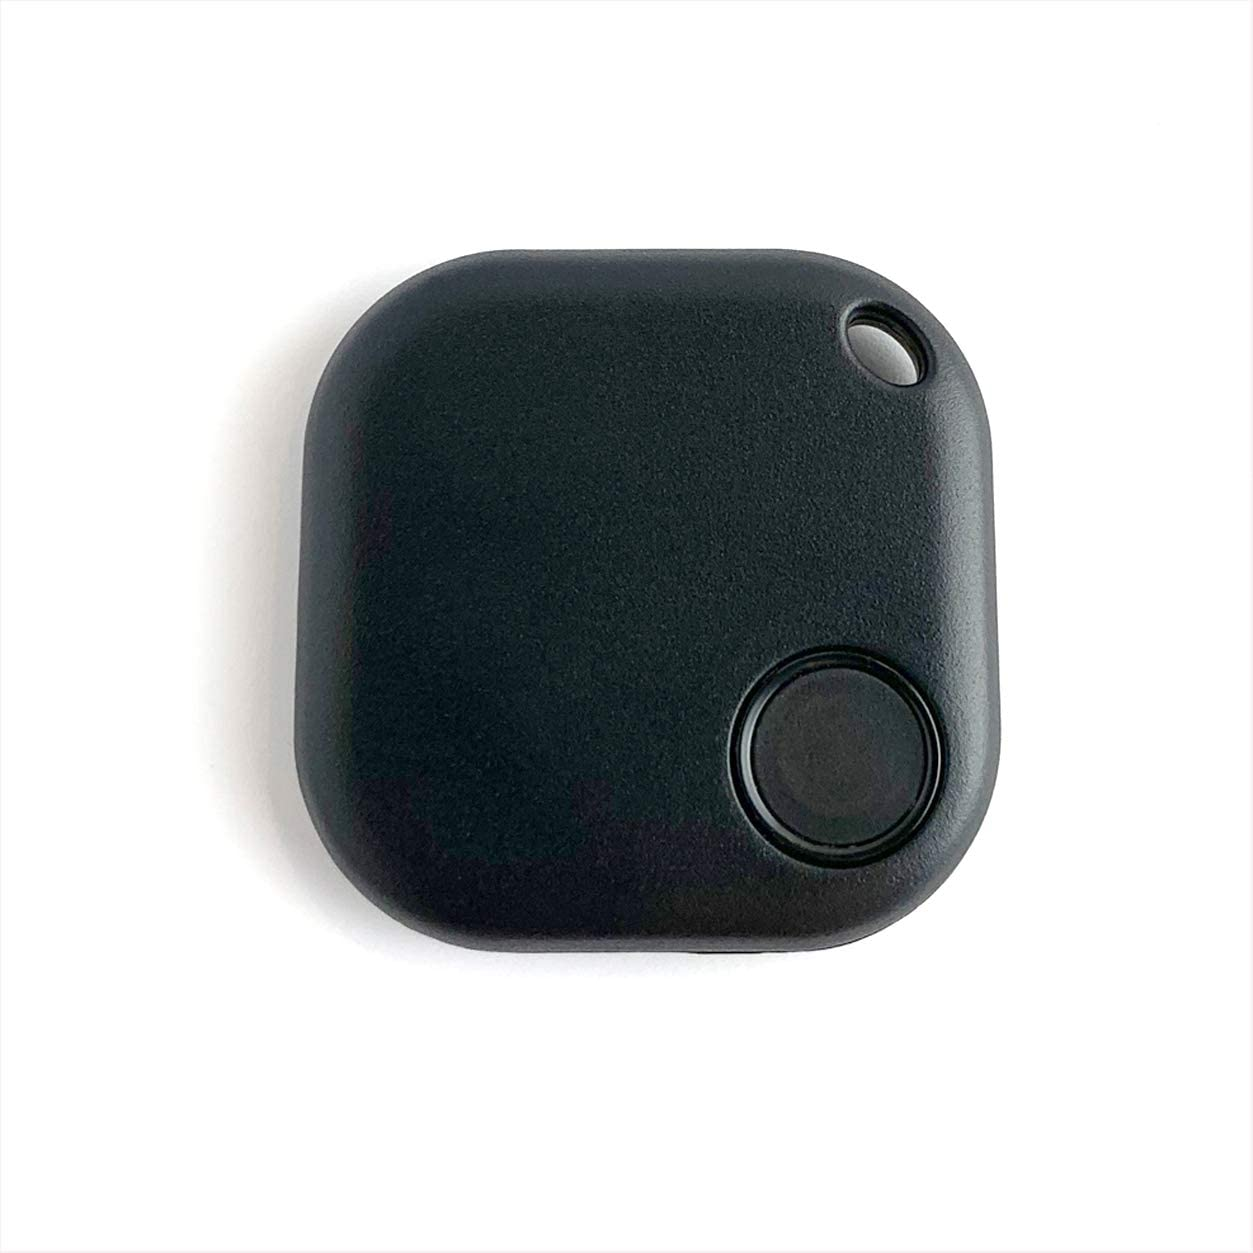 Blue Charm Beacons - Bluetooth BLE iBeacon (BC011-MultiBeacon) - Shows Battery Level in Broadcast - Long Range BLE 5.0